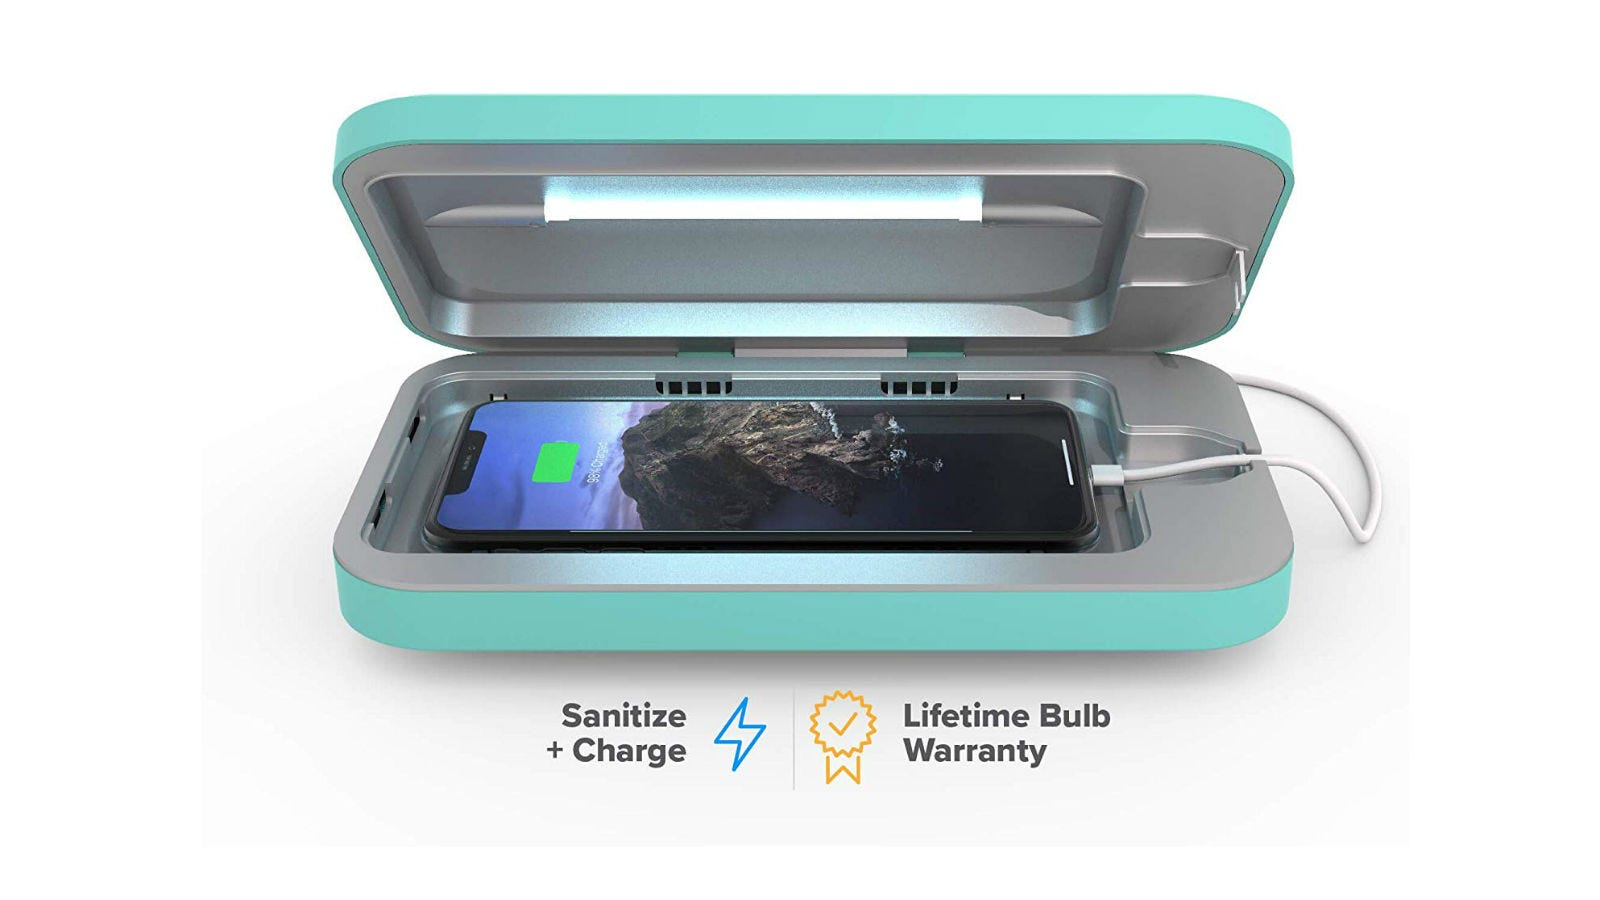 The PhoneSoap 3 UV Smartphone Sanitizer & Universal Charger with its lid open, showing a smartphone inside that's charging.